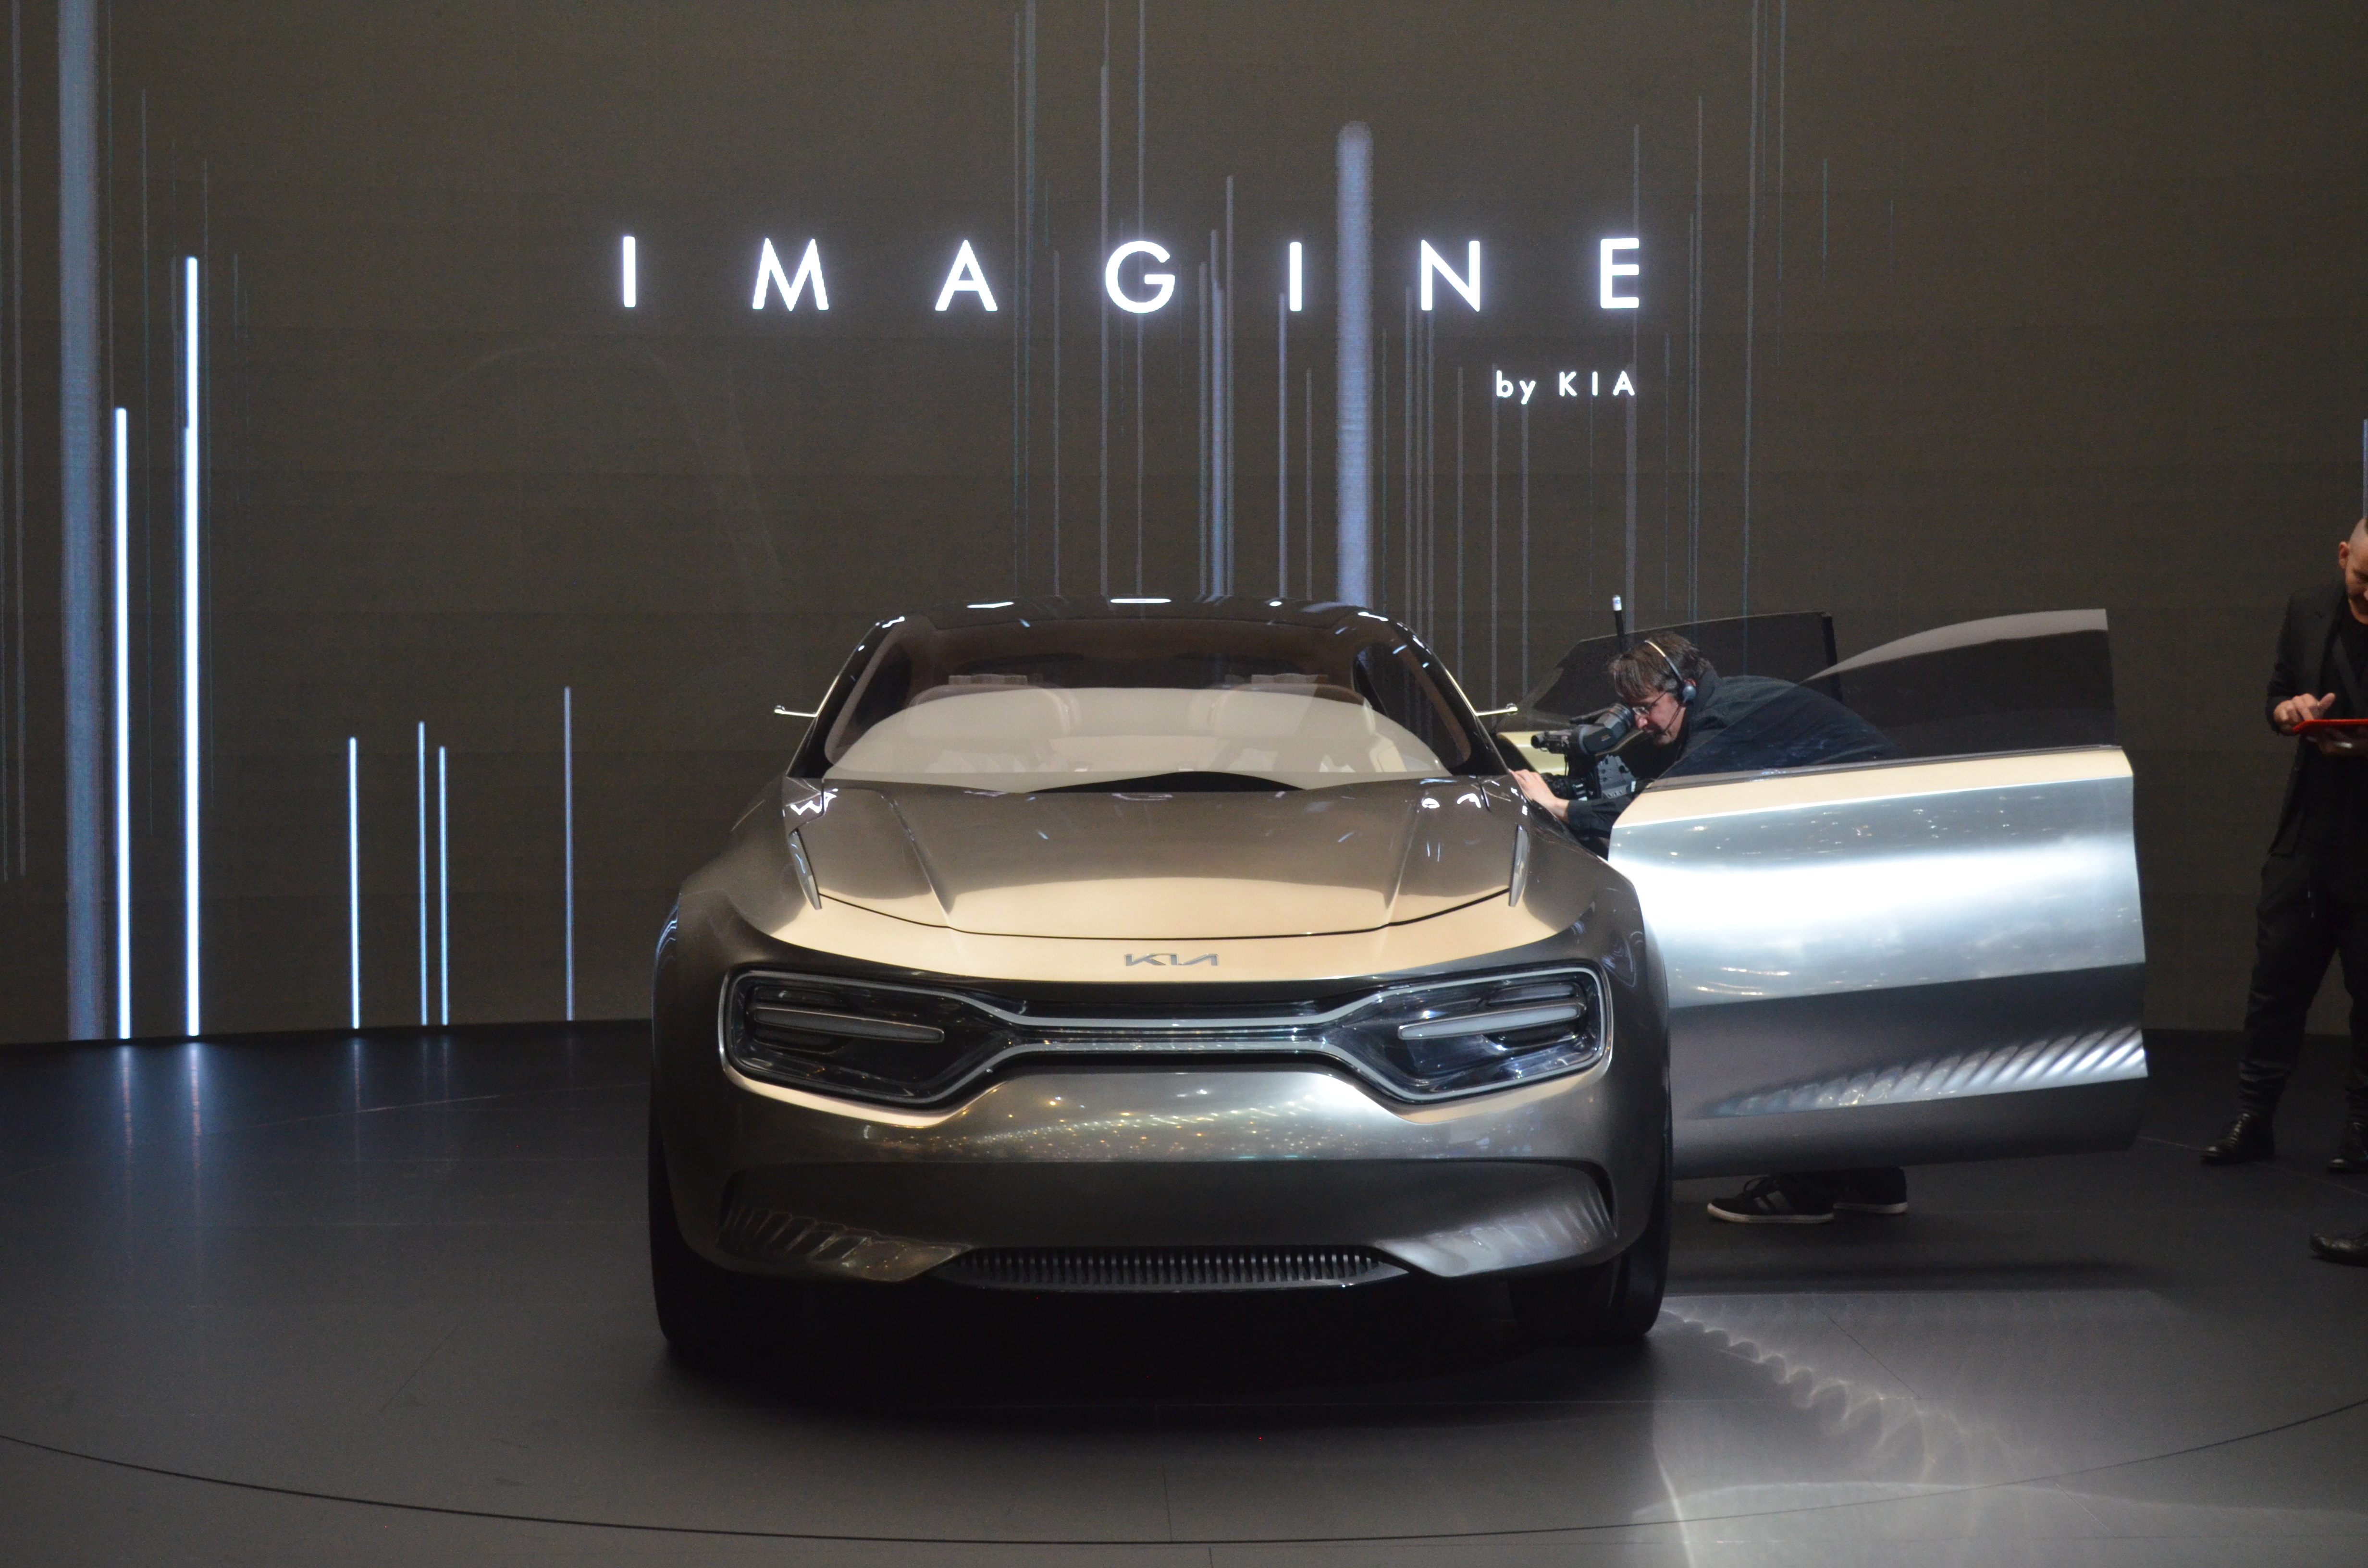 kia-imagine-salone-ginevra-2019